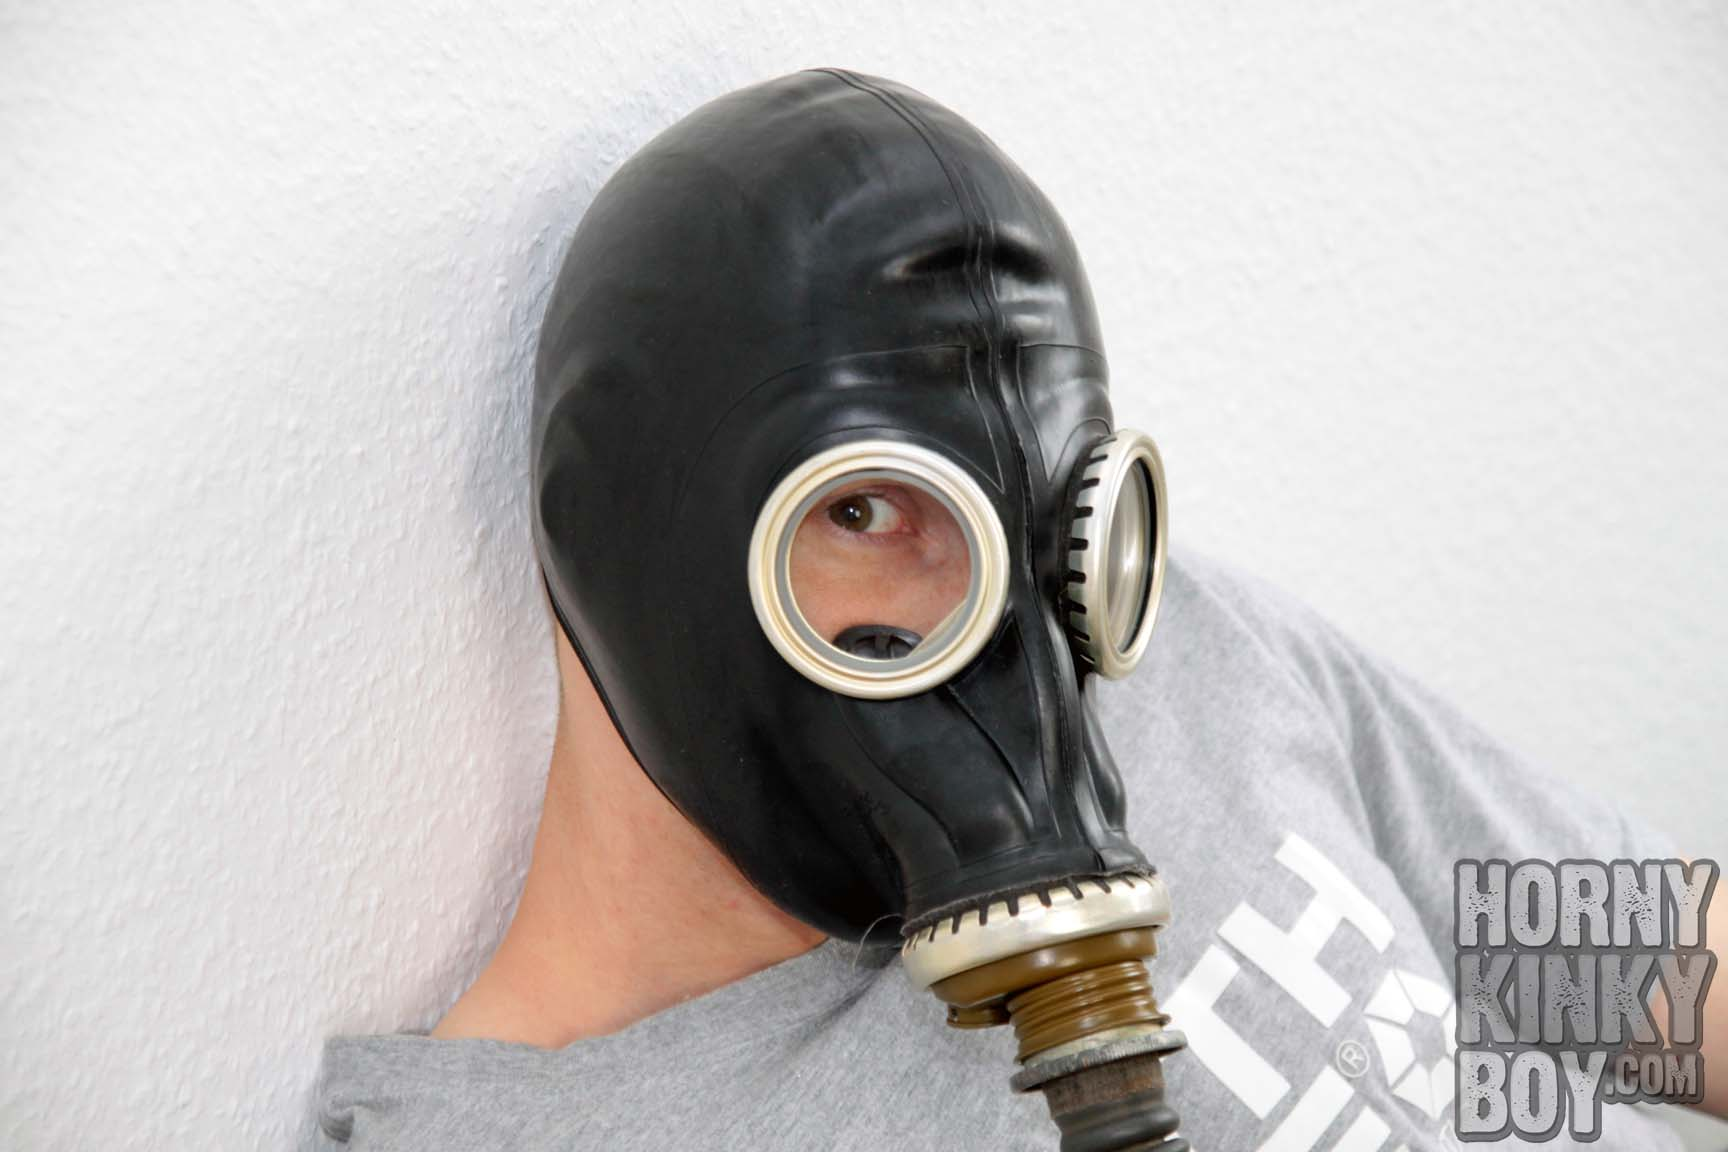 Getting Horny In Proll Skater Gear, Sneaks, And Gas Mask